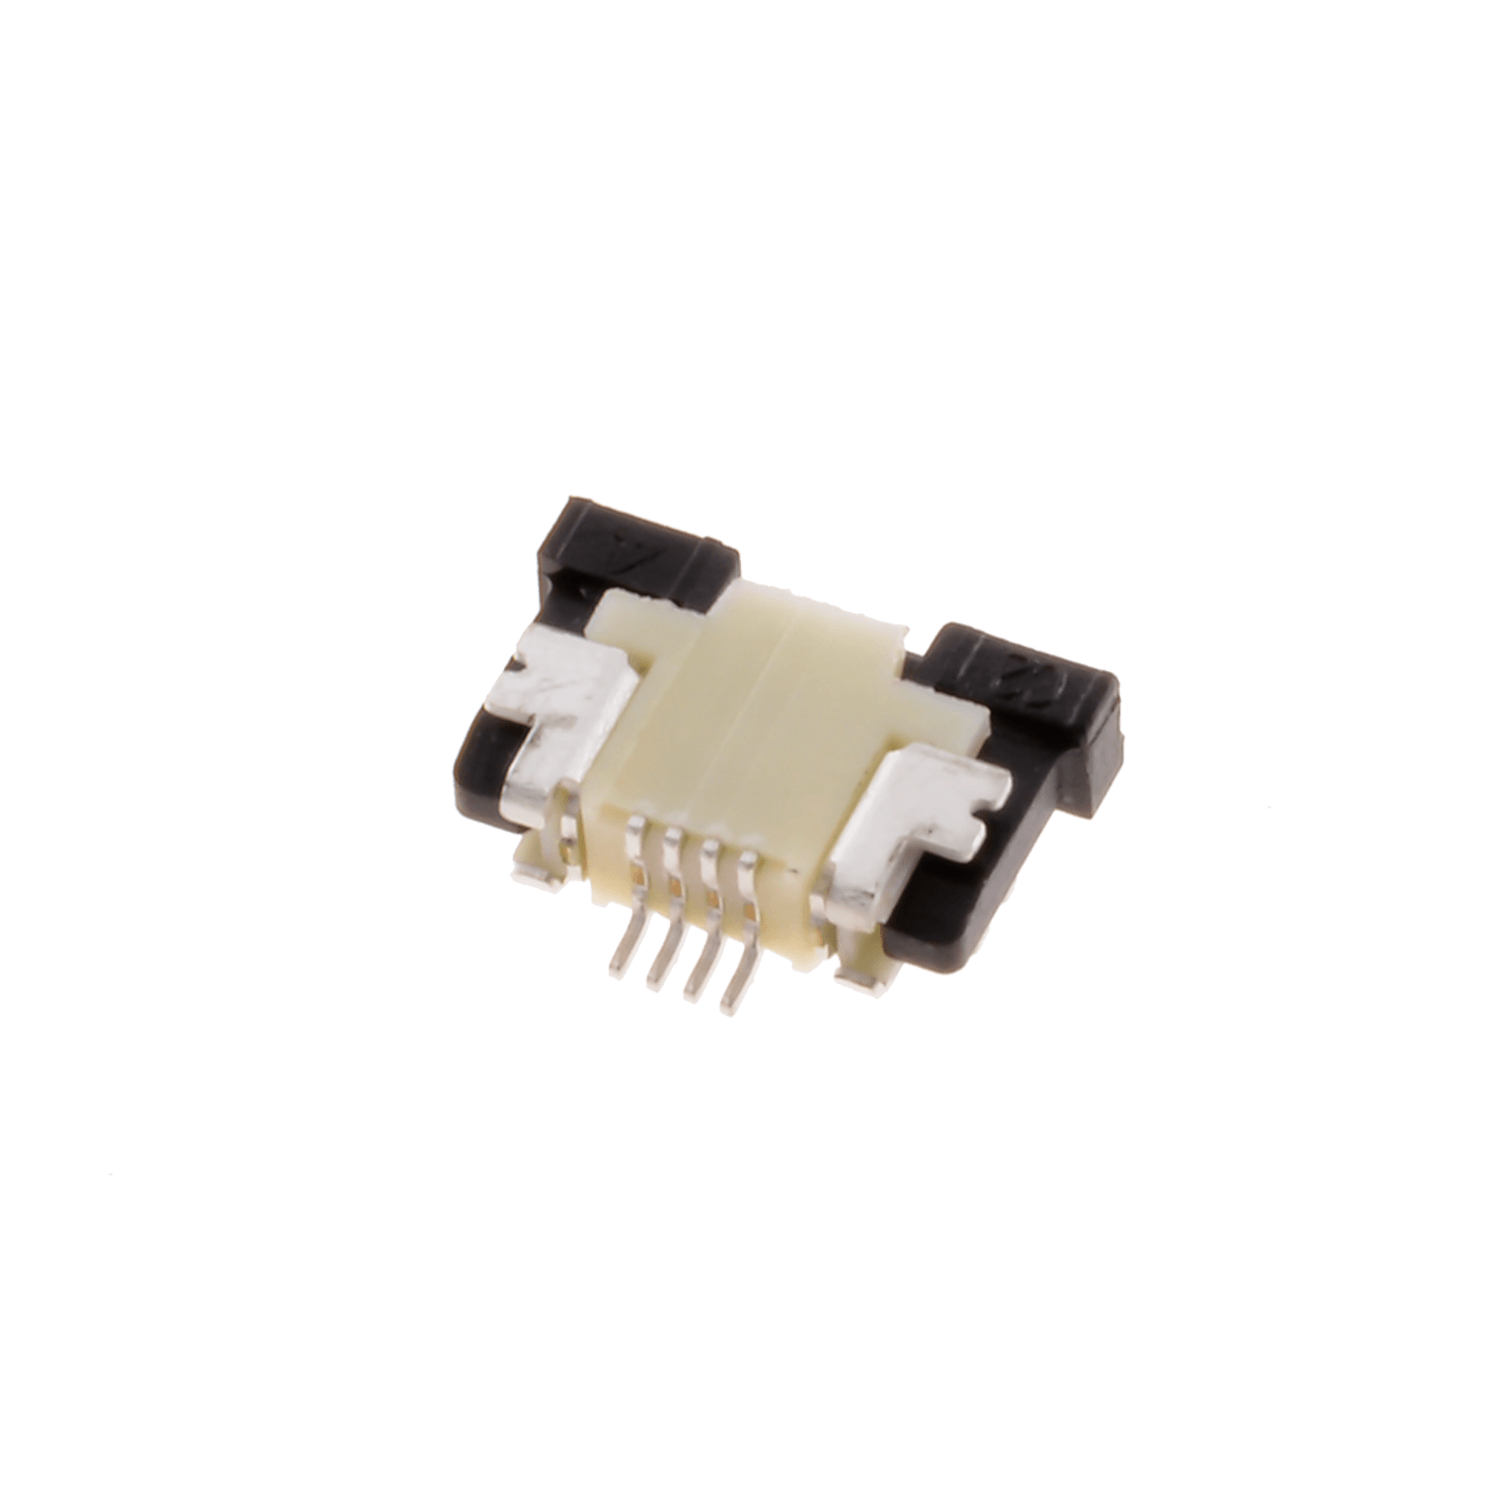 ZIF0504UH – ZIF connector, 0.5 mm pitch, 4 pins, upside contact